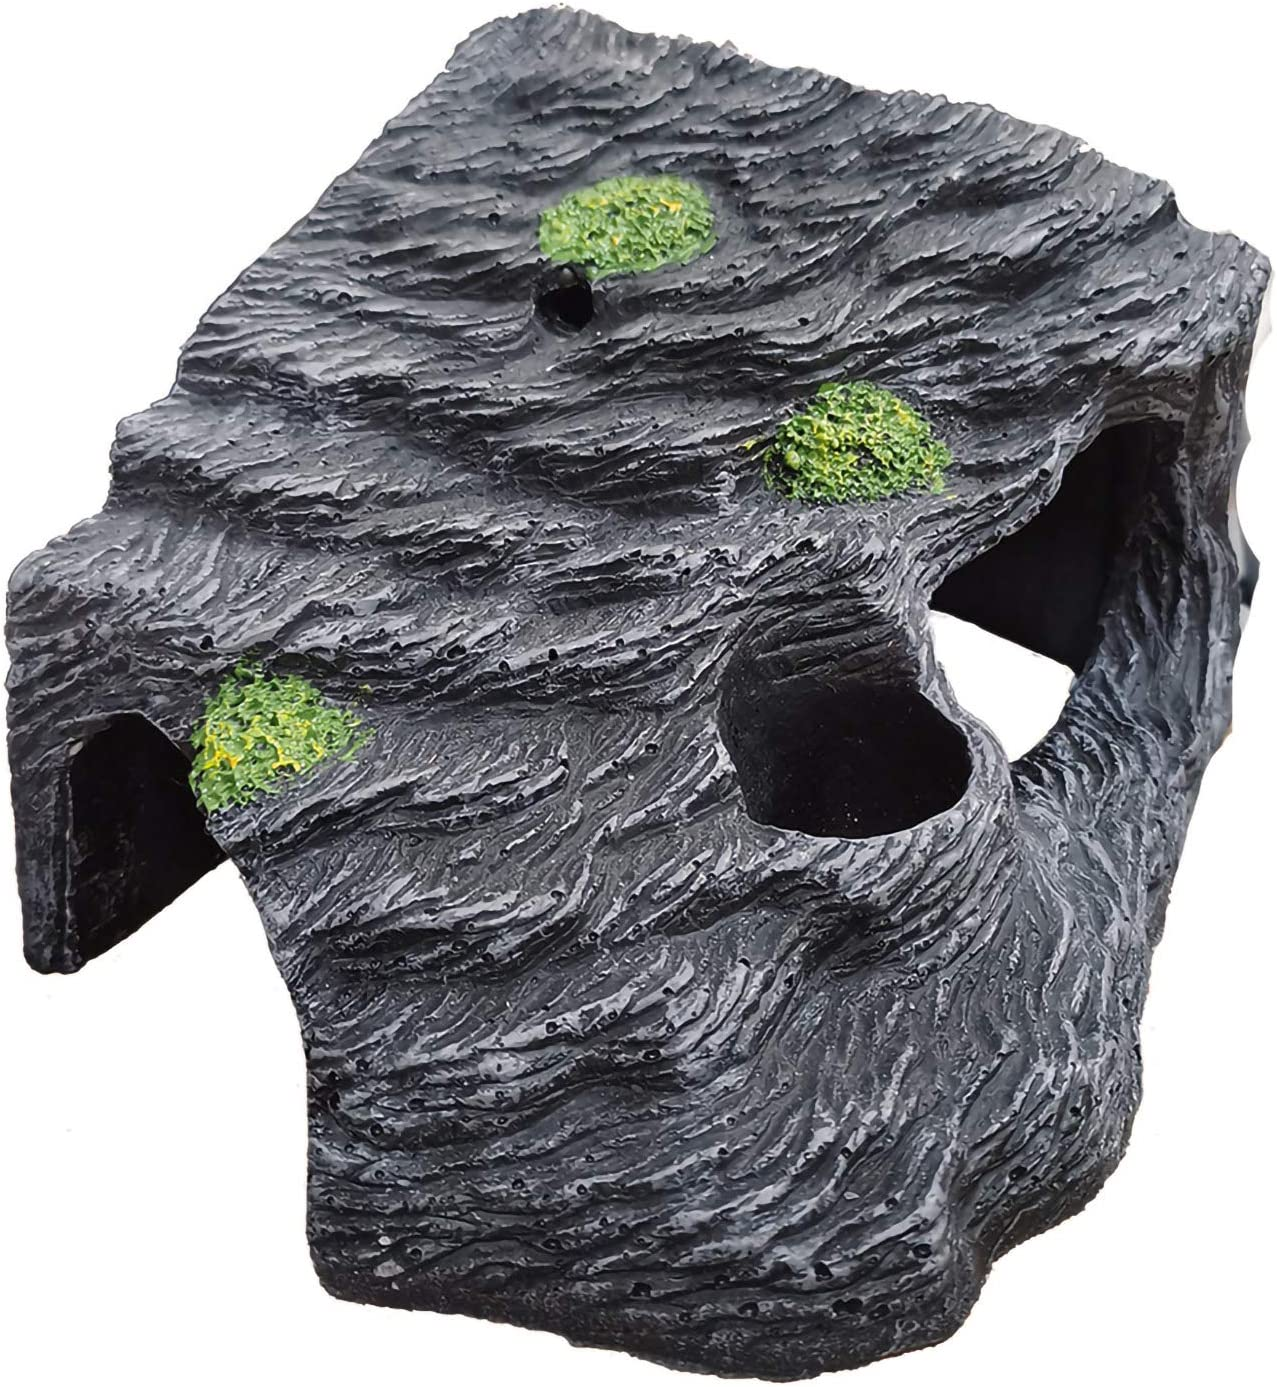 Hamiledyi Reptile Hideout,Reptile Habitat Decor,Aquarium Decoration Terrarium Resin Hideout for Leopard Gecko Cichlids Spiders Lizards Betta Fish